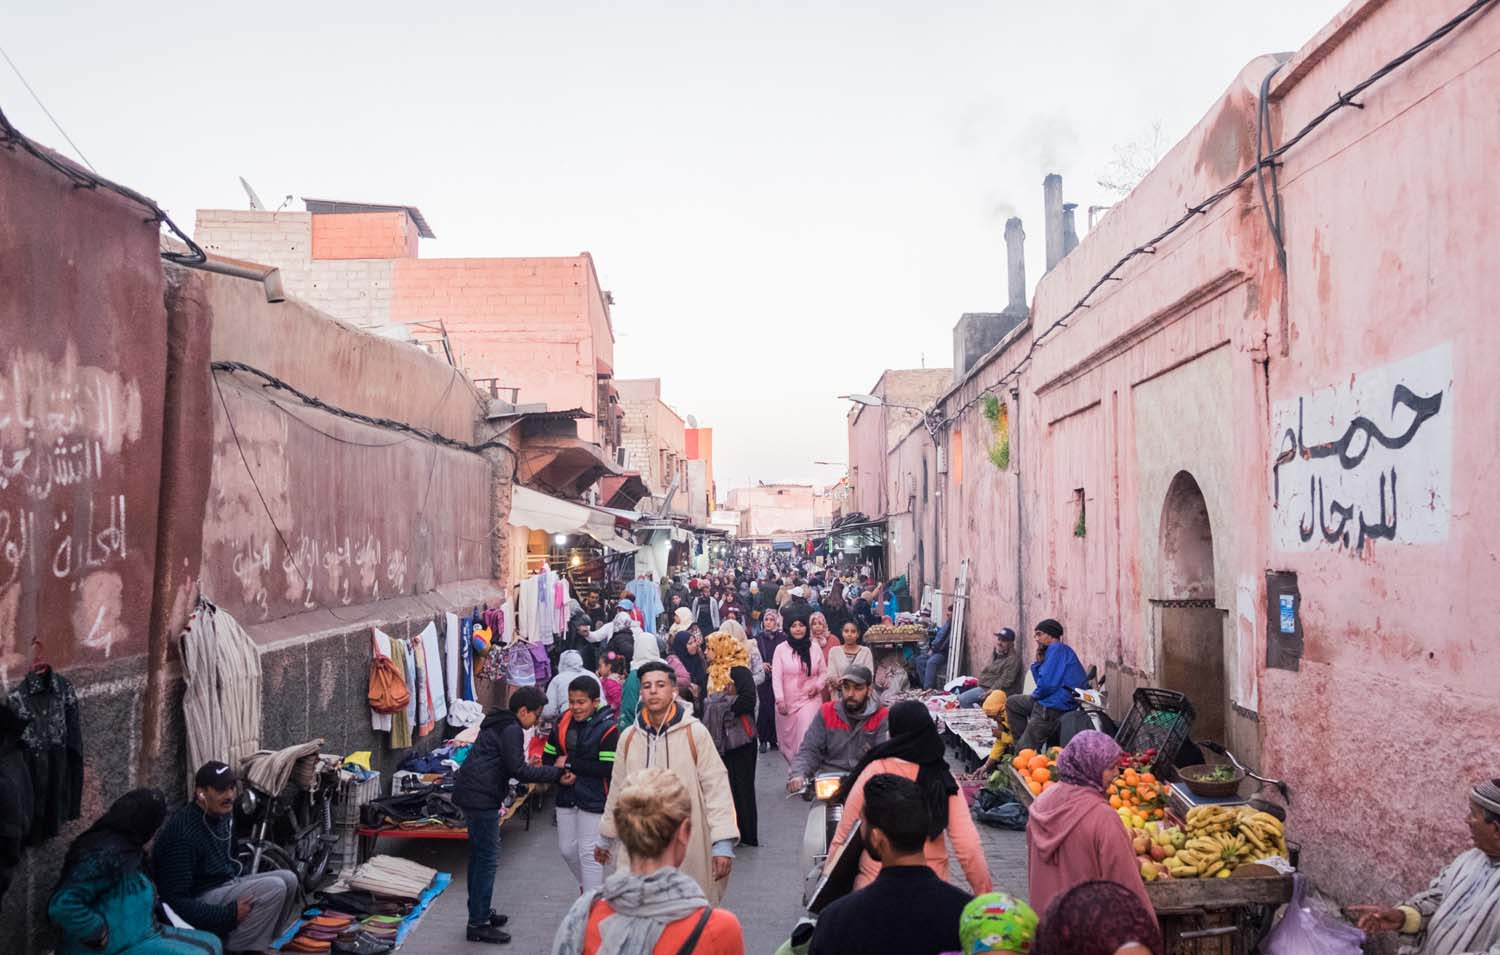 Busy street in the Marrakech medina